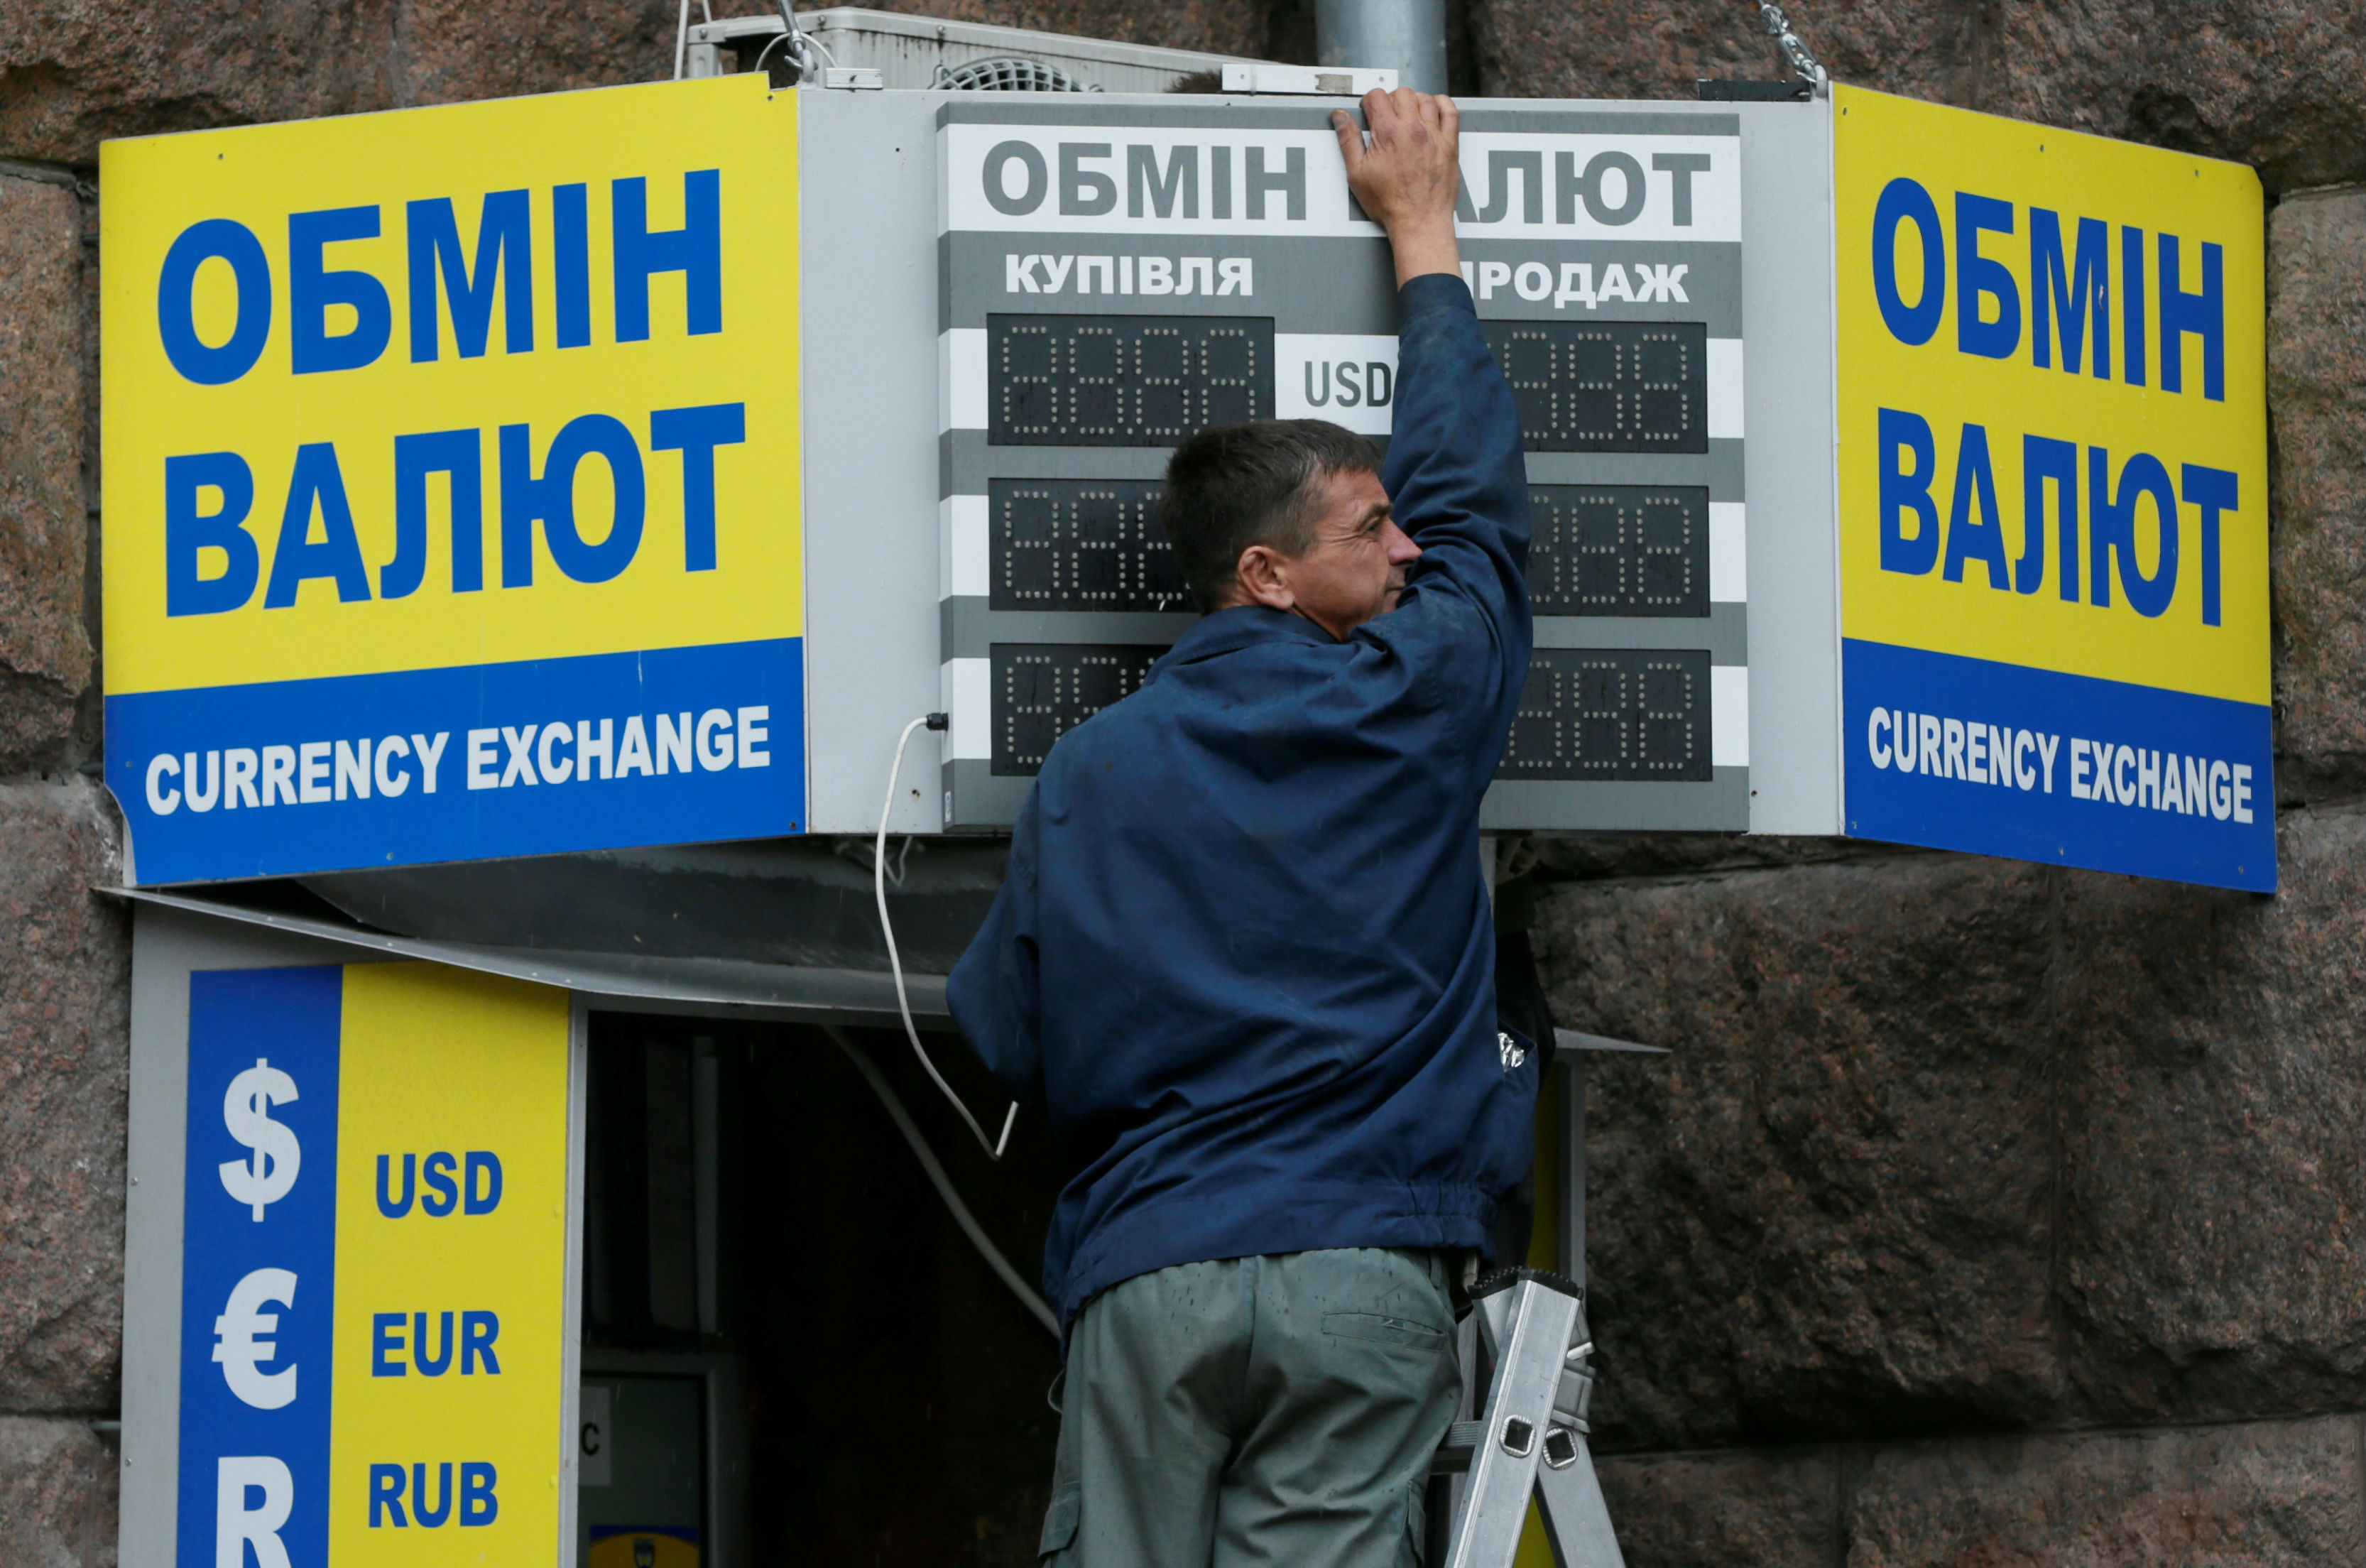 Q&A: Will Ukraine Face a Serious Financial Crisis If It Doesn't Get IMF Money Before November?